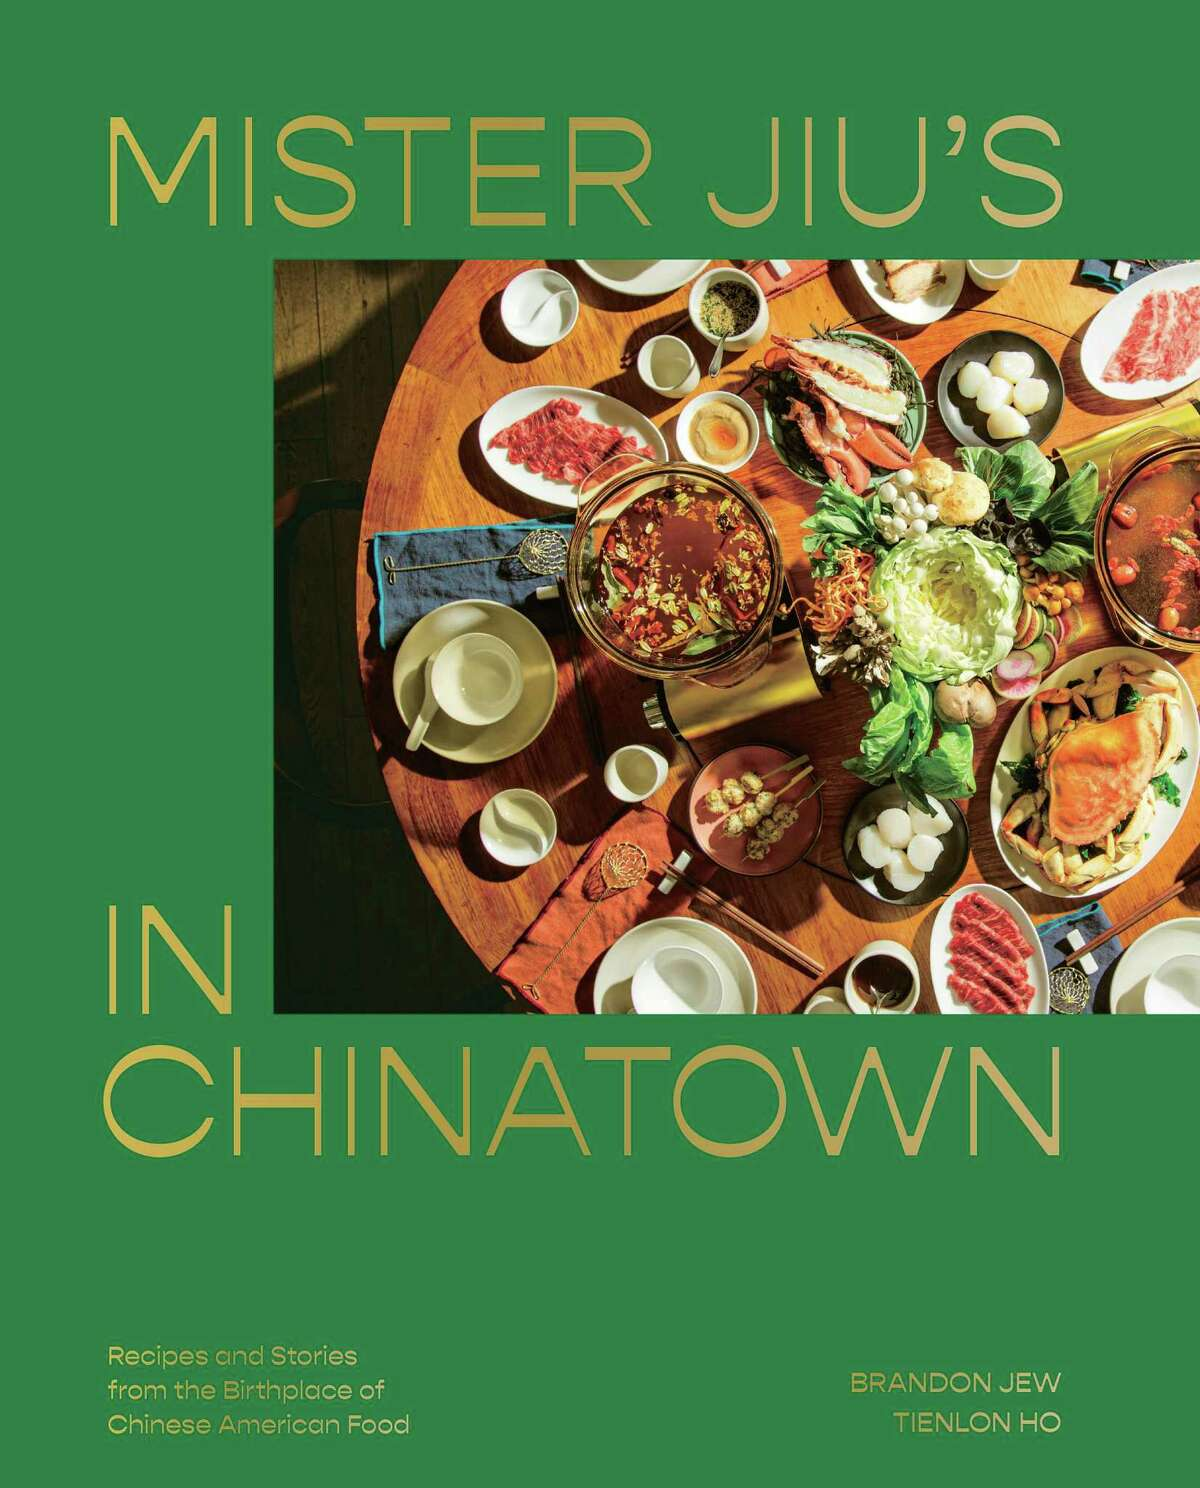 """The cover of """"Mister Jiu's in Chinatown: Recipes and Stories From the Birthplace of Chinese American Food"""" by Brandon Jew and Tienlon Ho."""